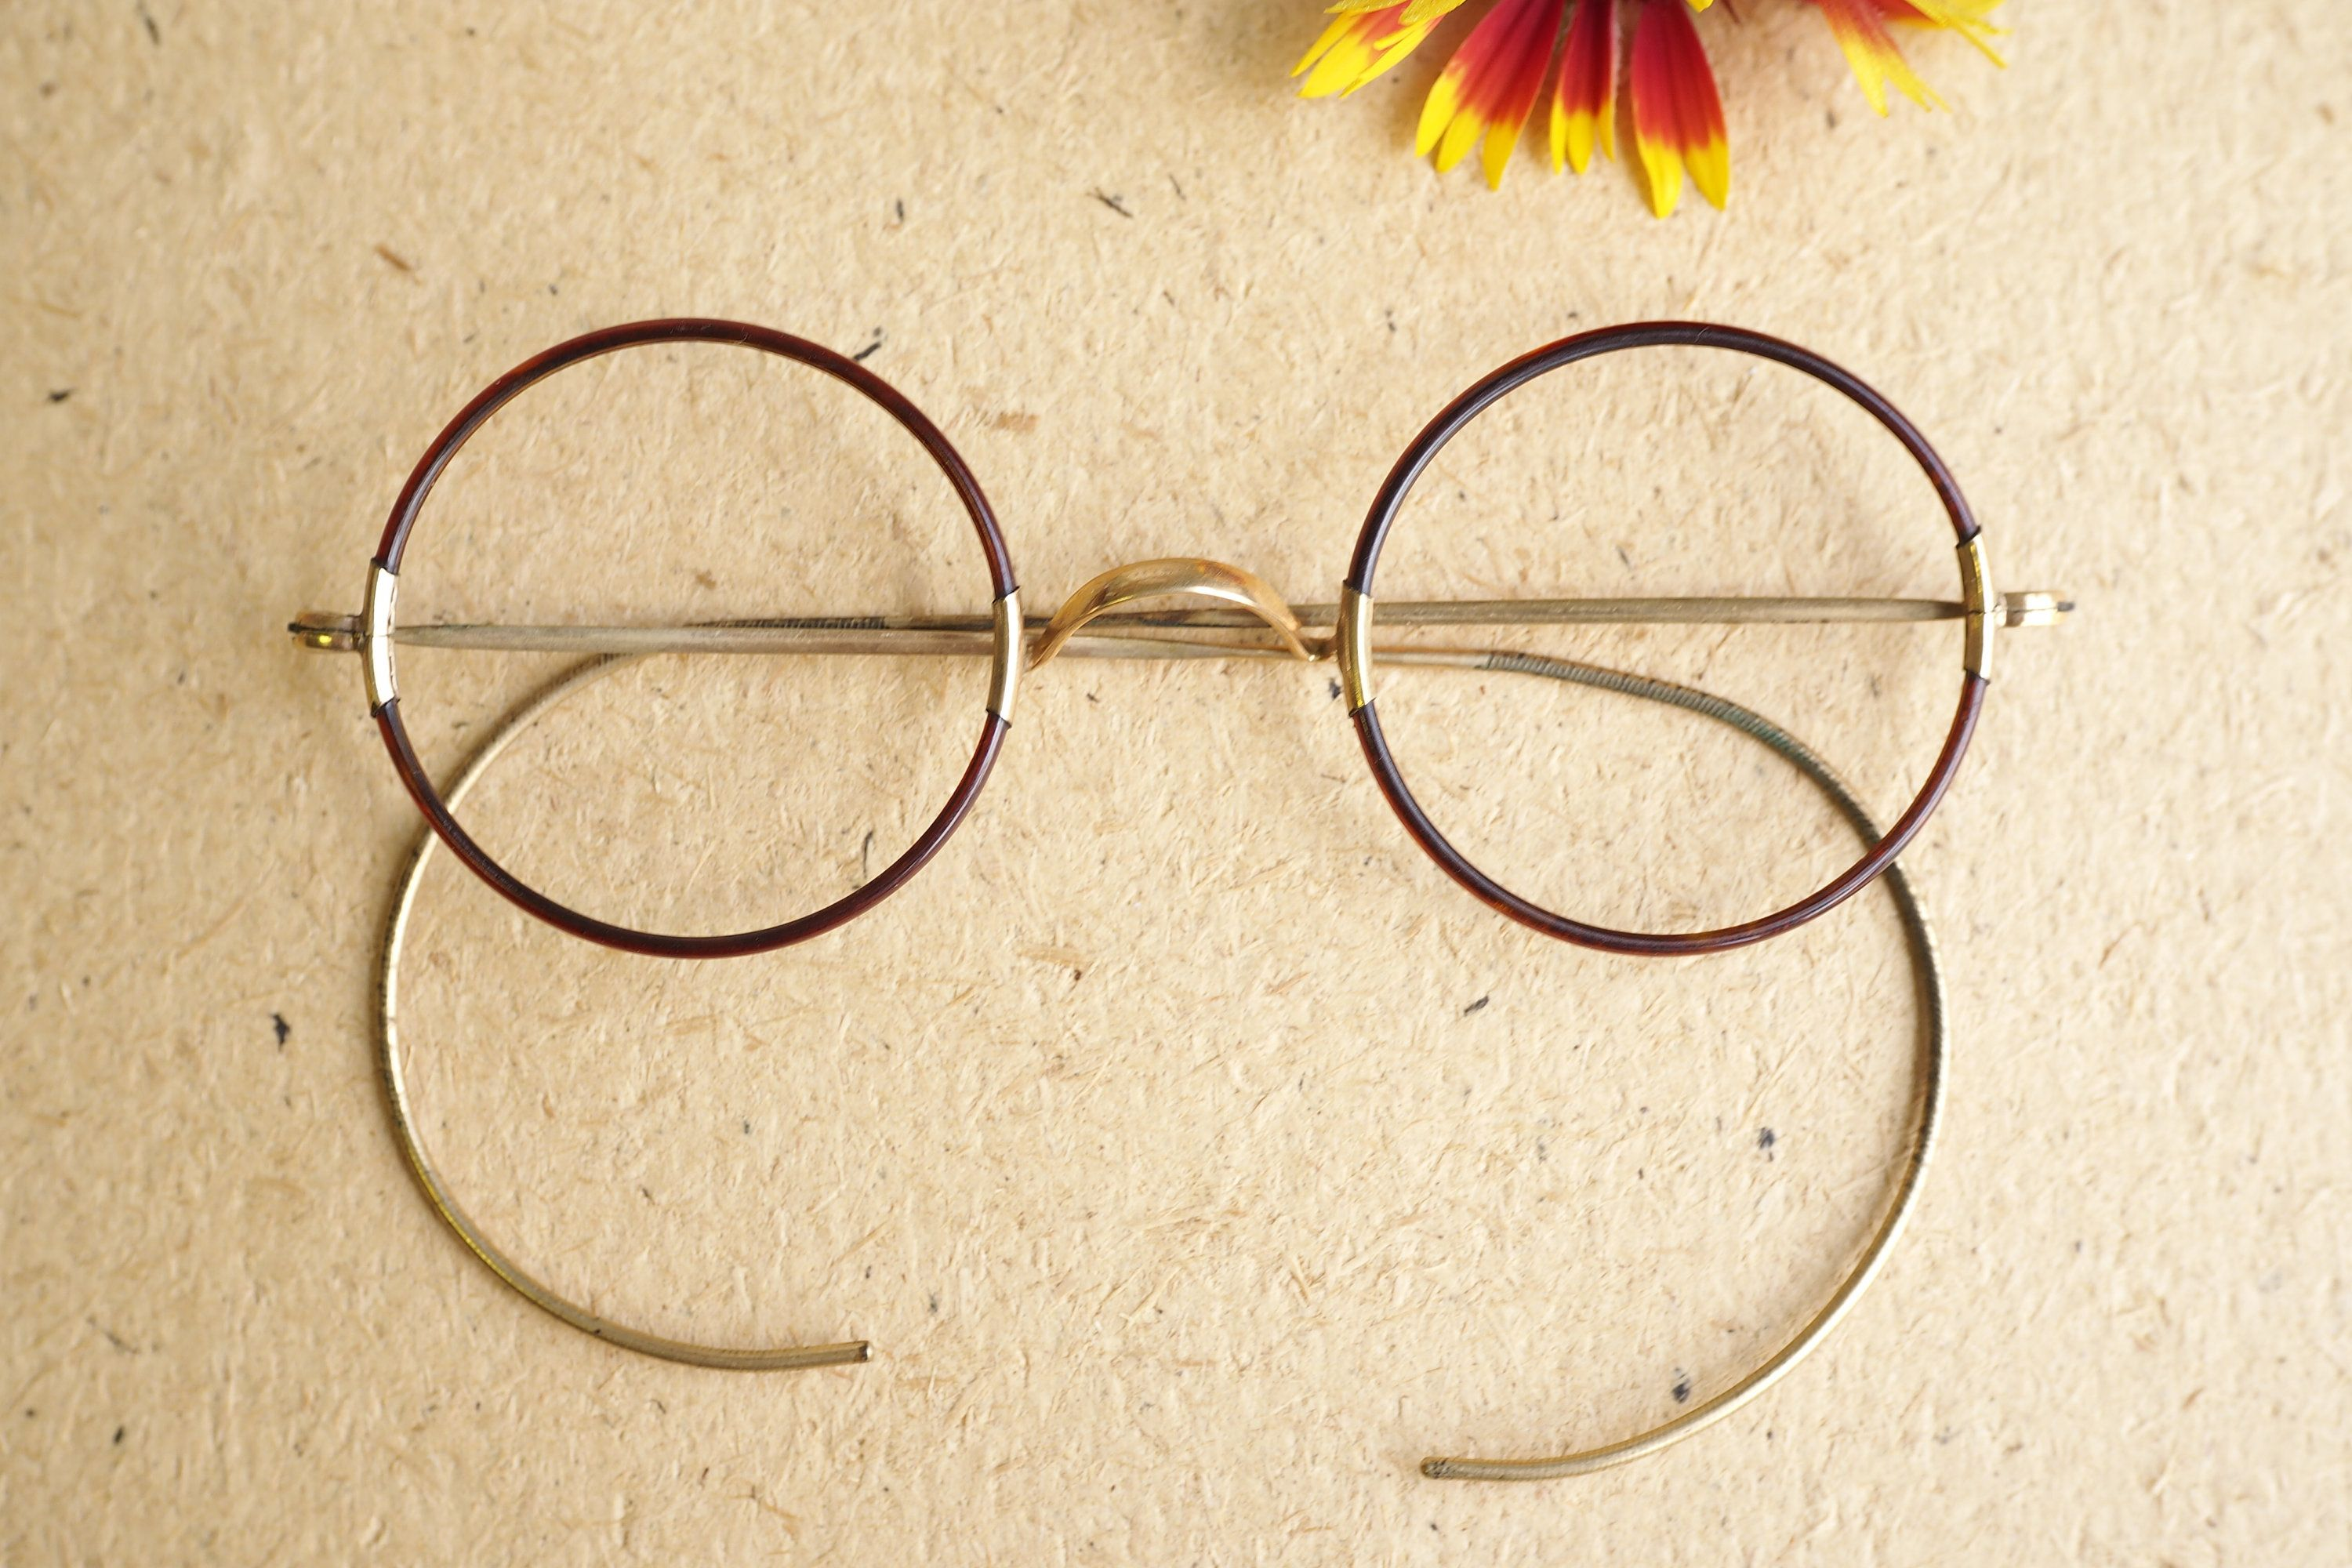 d0658a31f2d5 Excited to share the latest addition to my  etsy shop  Vintage Eyeglasses  1920s